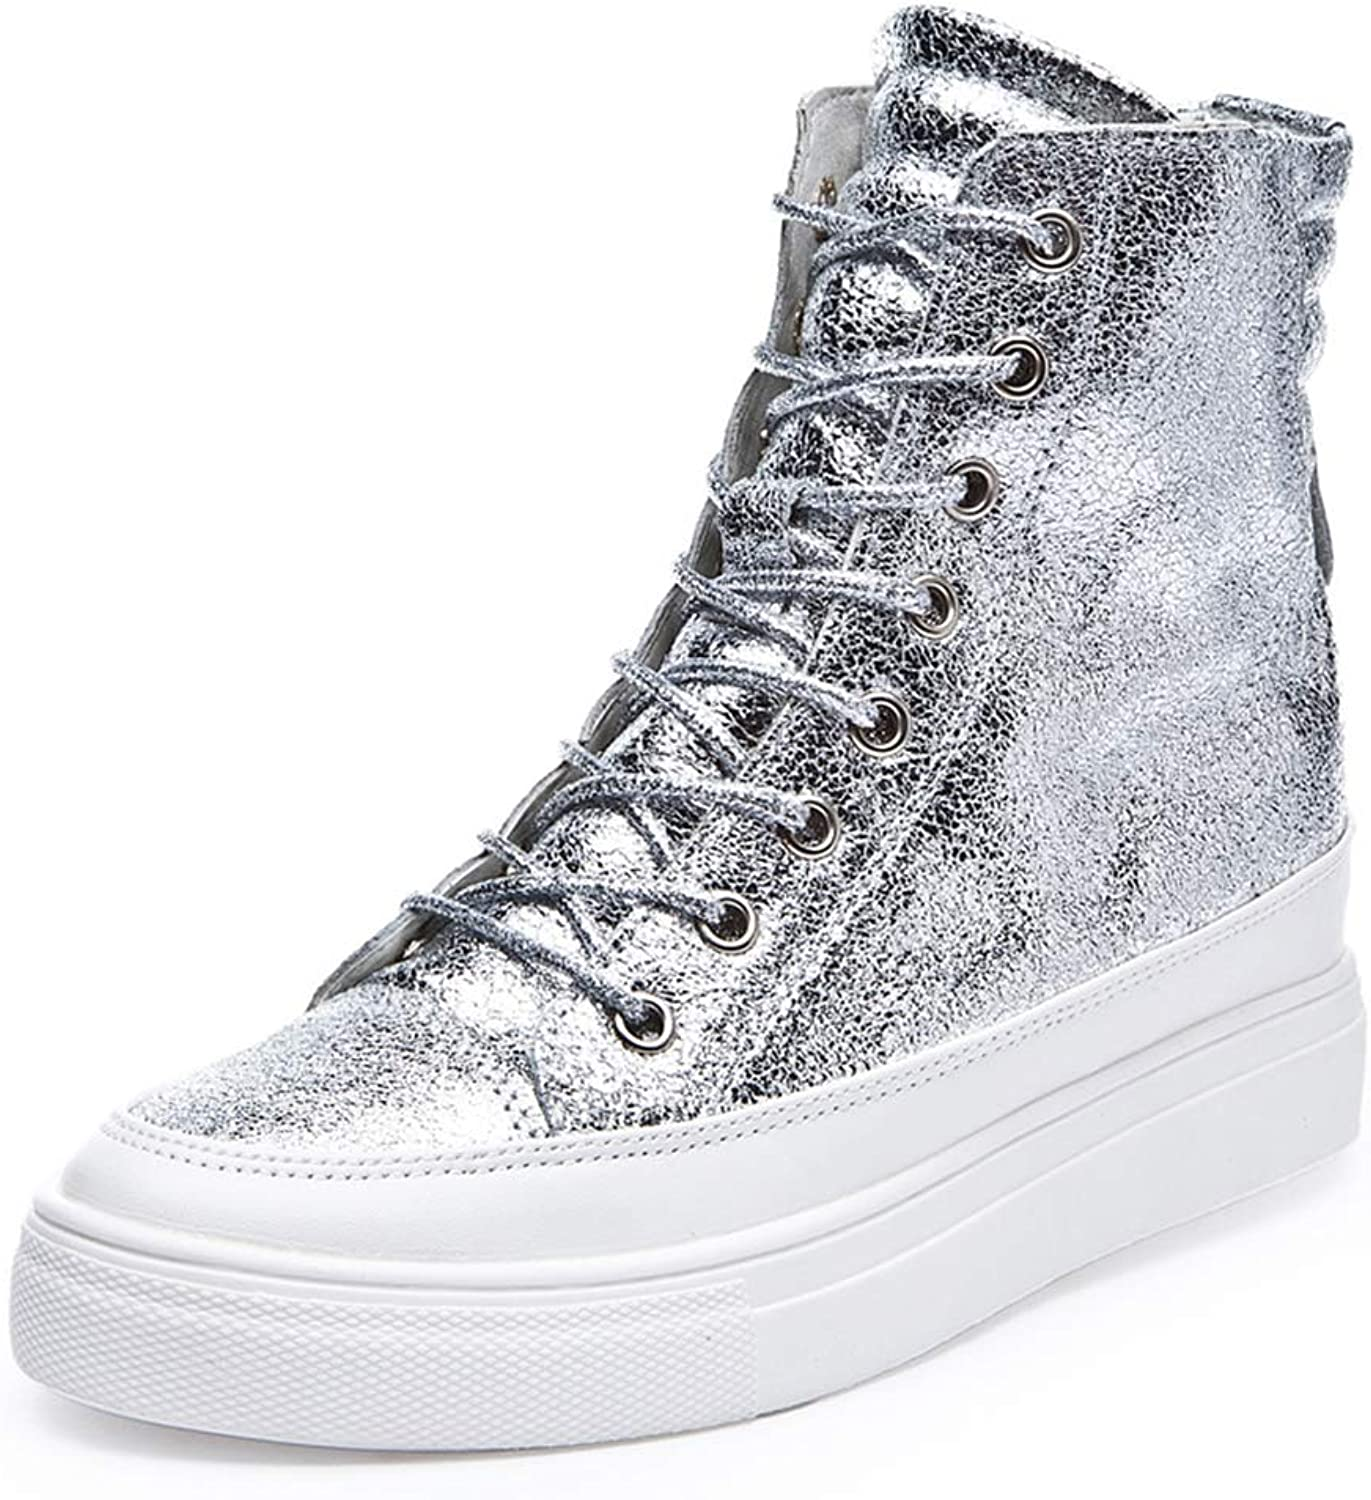 Women Faux Leather Casual shoes High Top Wedges shoes Height Increasing Platform Boots Ladies High Heels Trainers